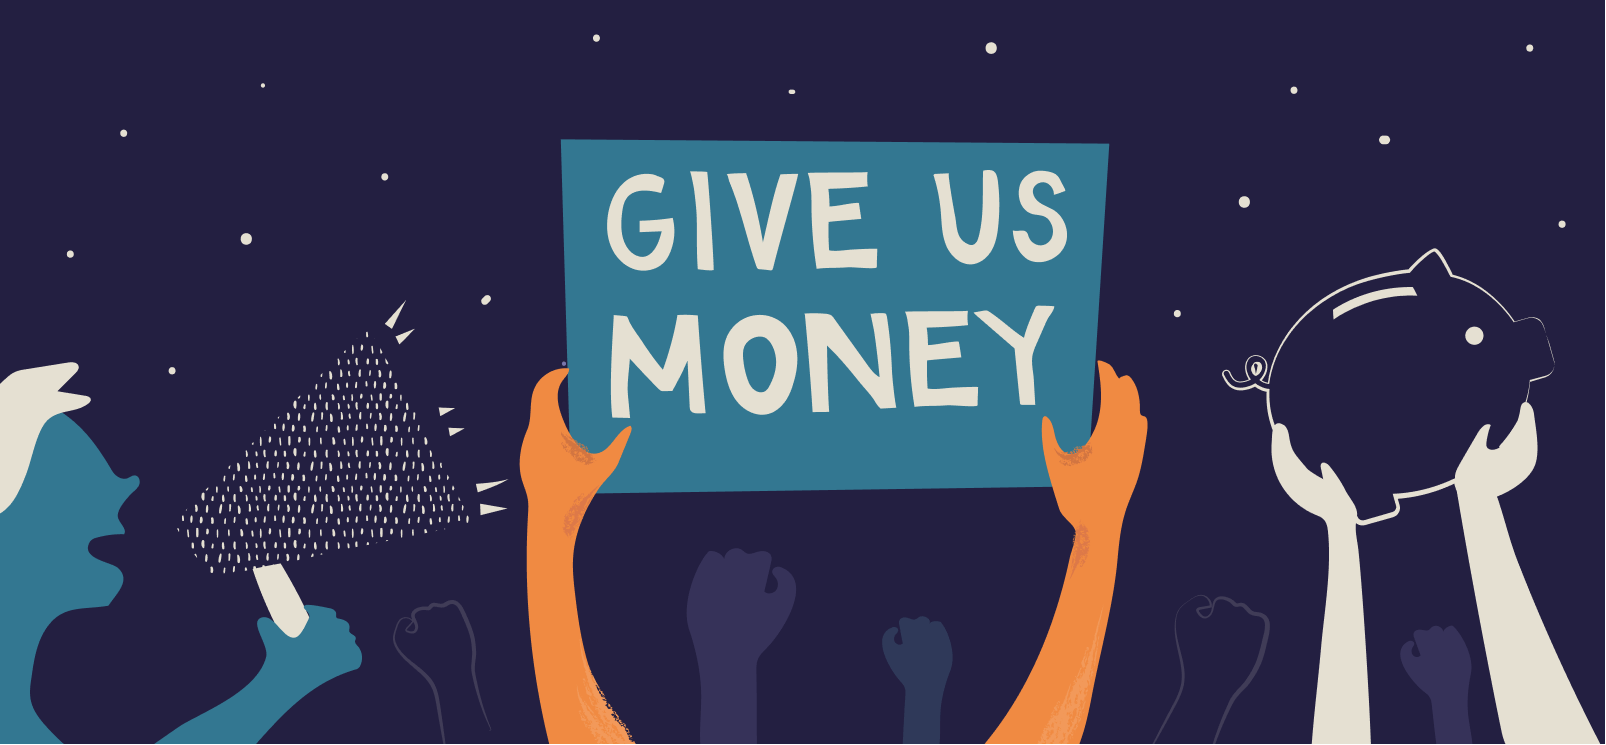 Fundraising is an uncertain and angst-inducing process, but one central to your company's survival; that's why you're going to want financial help along the way.